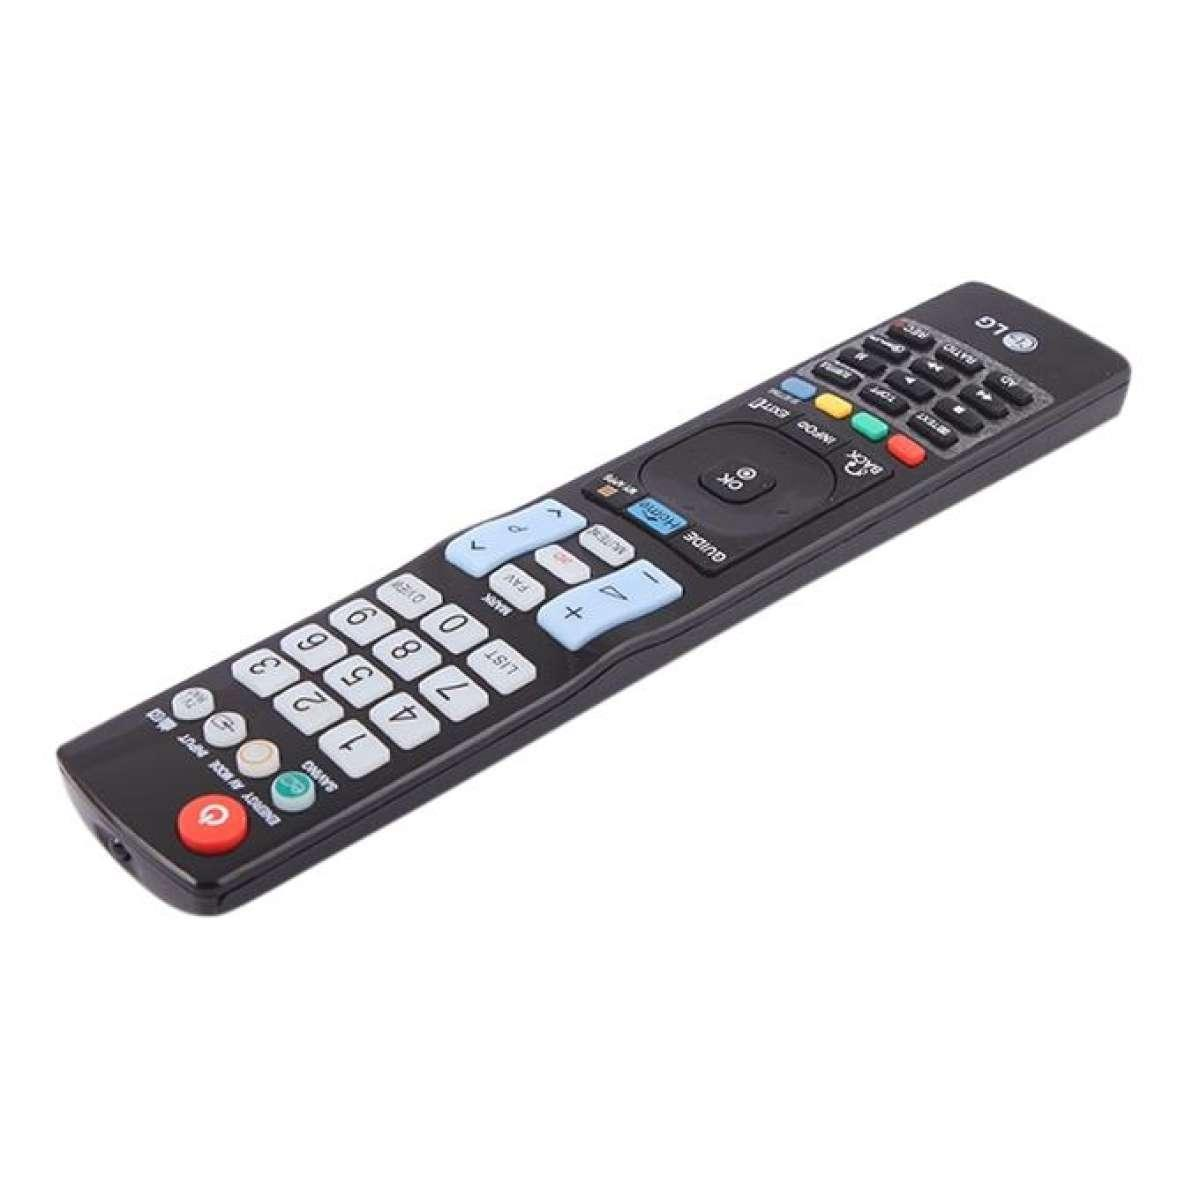 LG Smart 3D LED LCD HDTV TV Remote Control LG Universal TV Remote Control  works on All Model LG TV